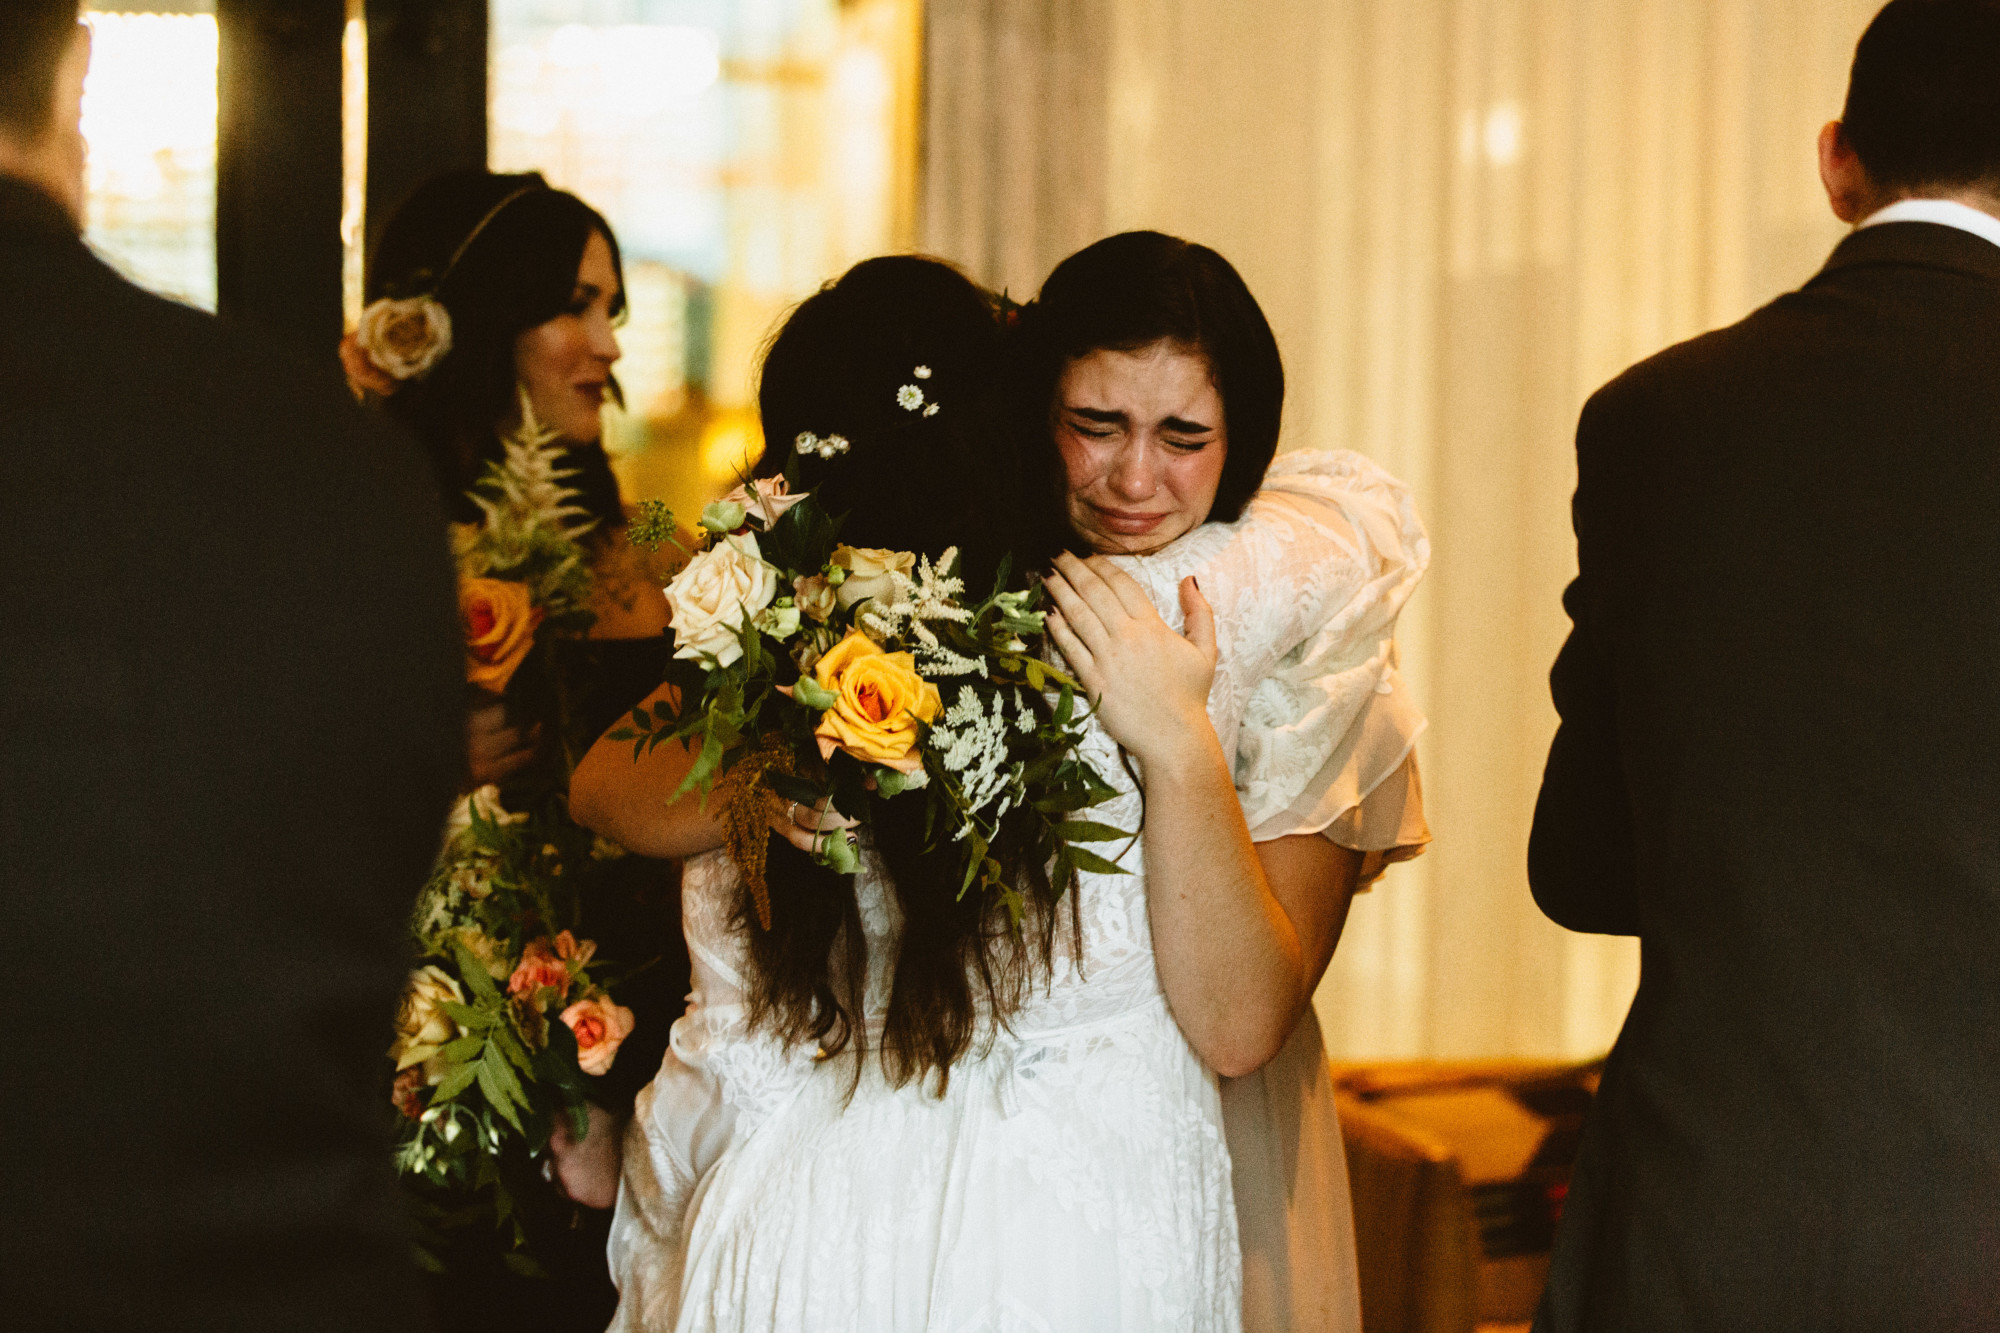 holly&austin_south_congress_hotel_wedding_photos184828.jpg